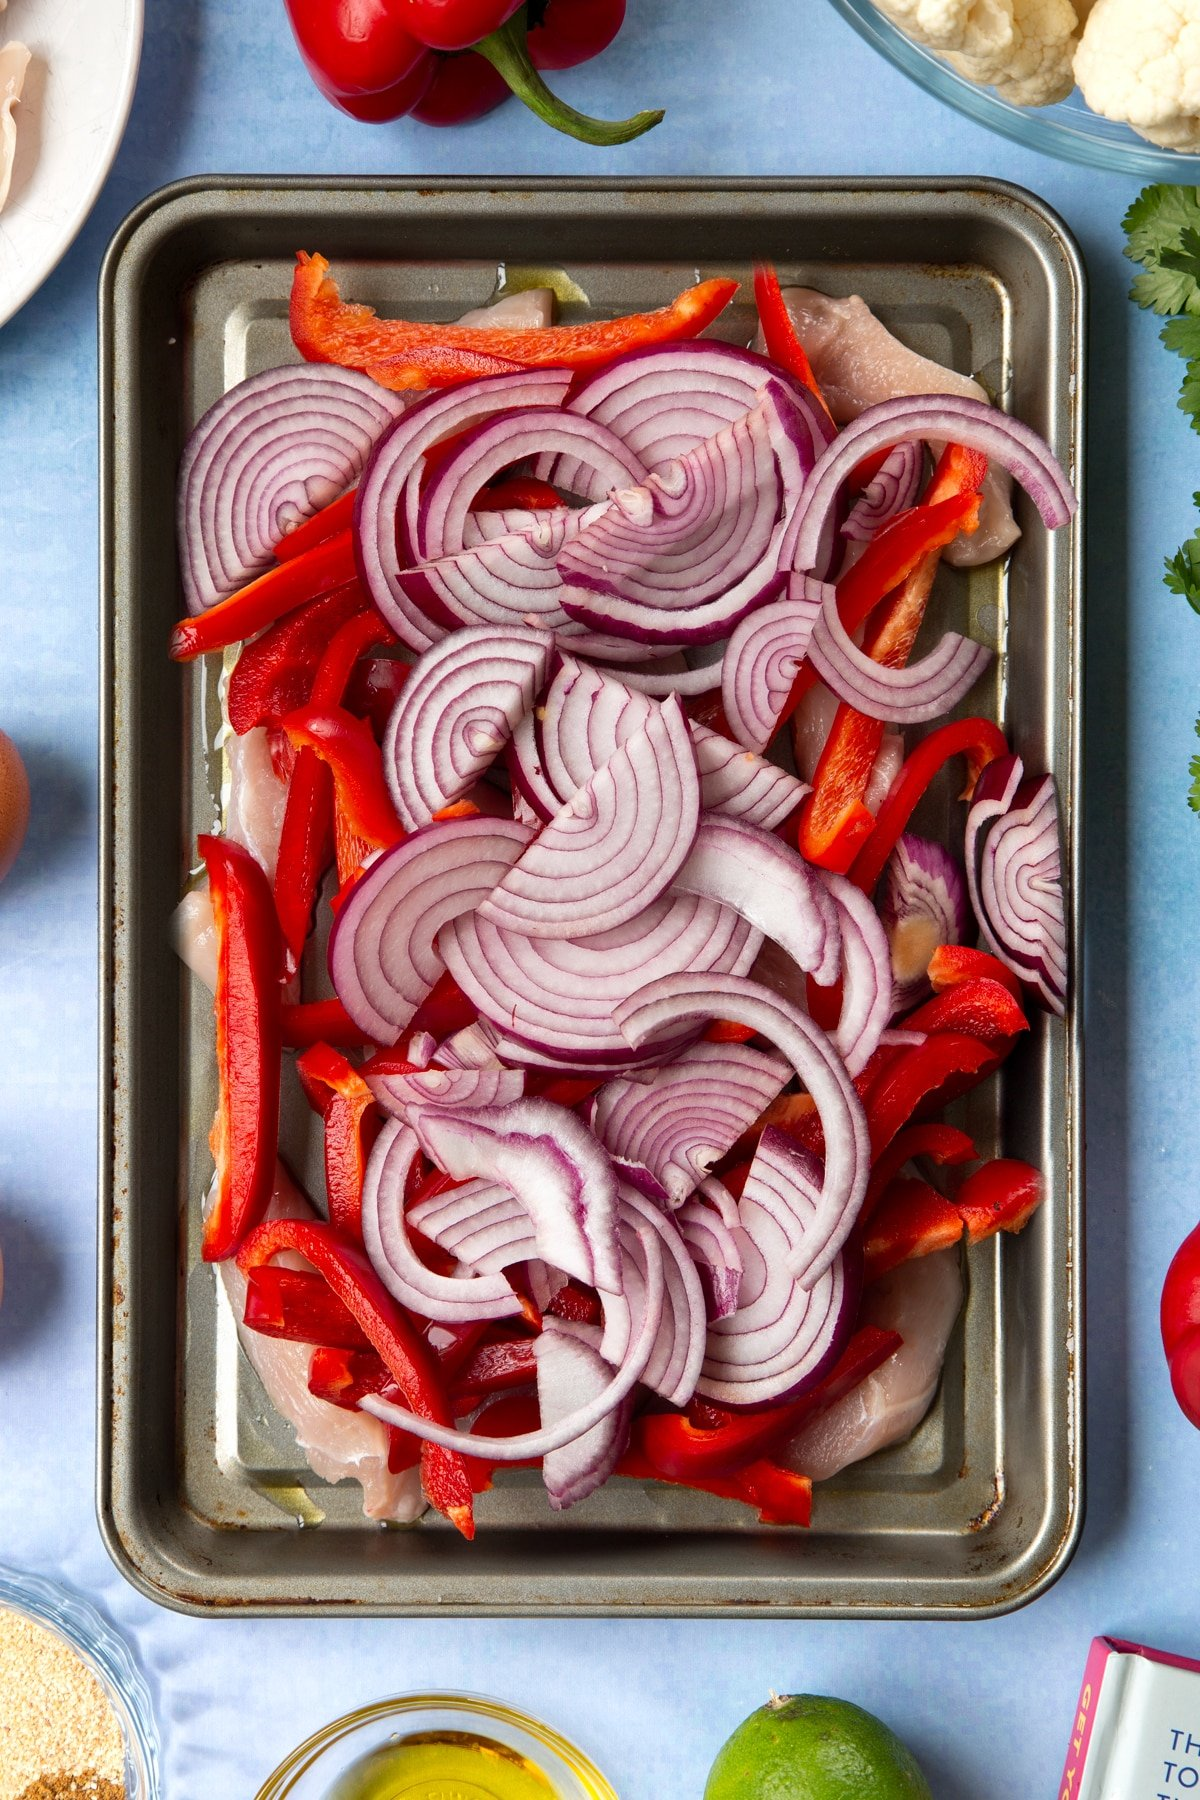 Sliced chicken breast, sliced red peppers and sliced red onion on an oiled tray. The tray is surrounded by ingredients for cauliflower tacos.